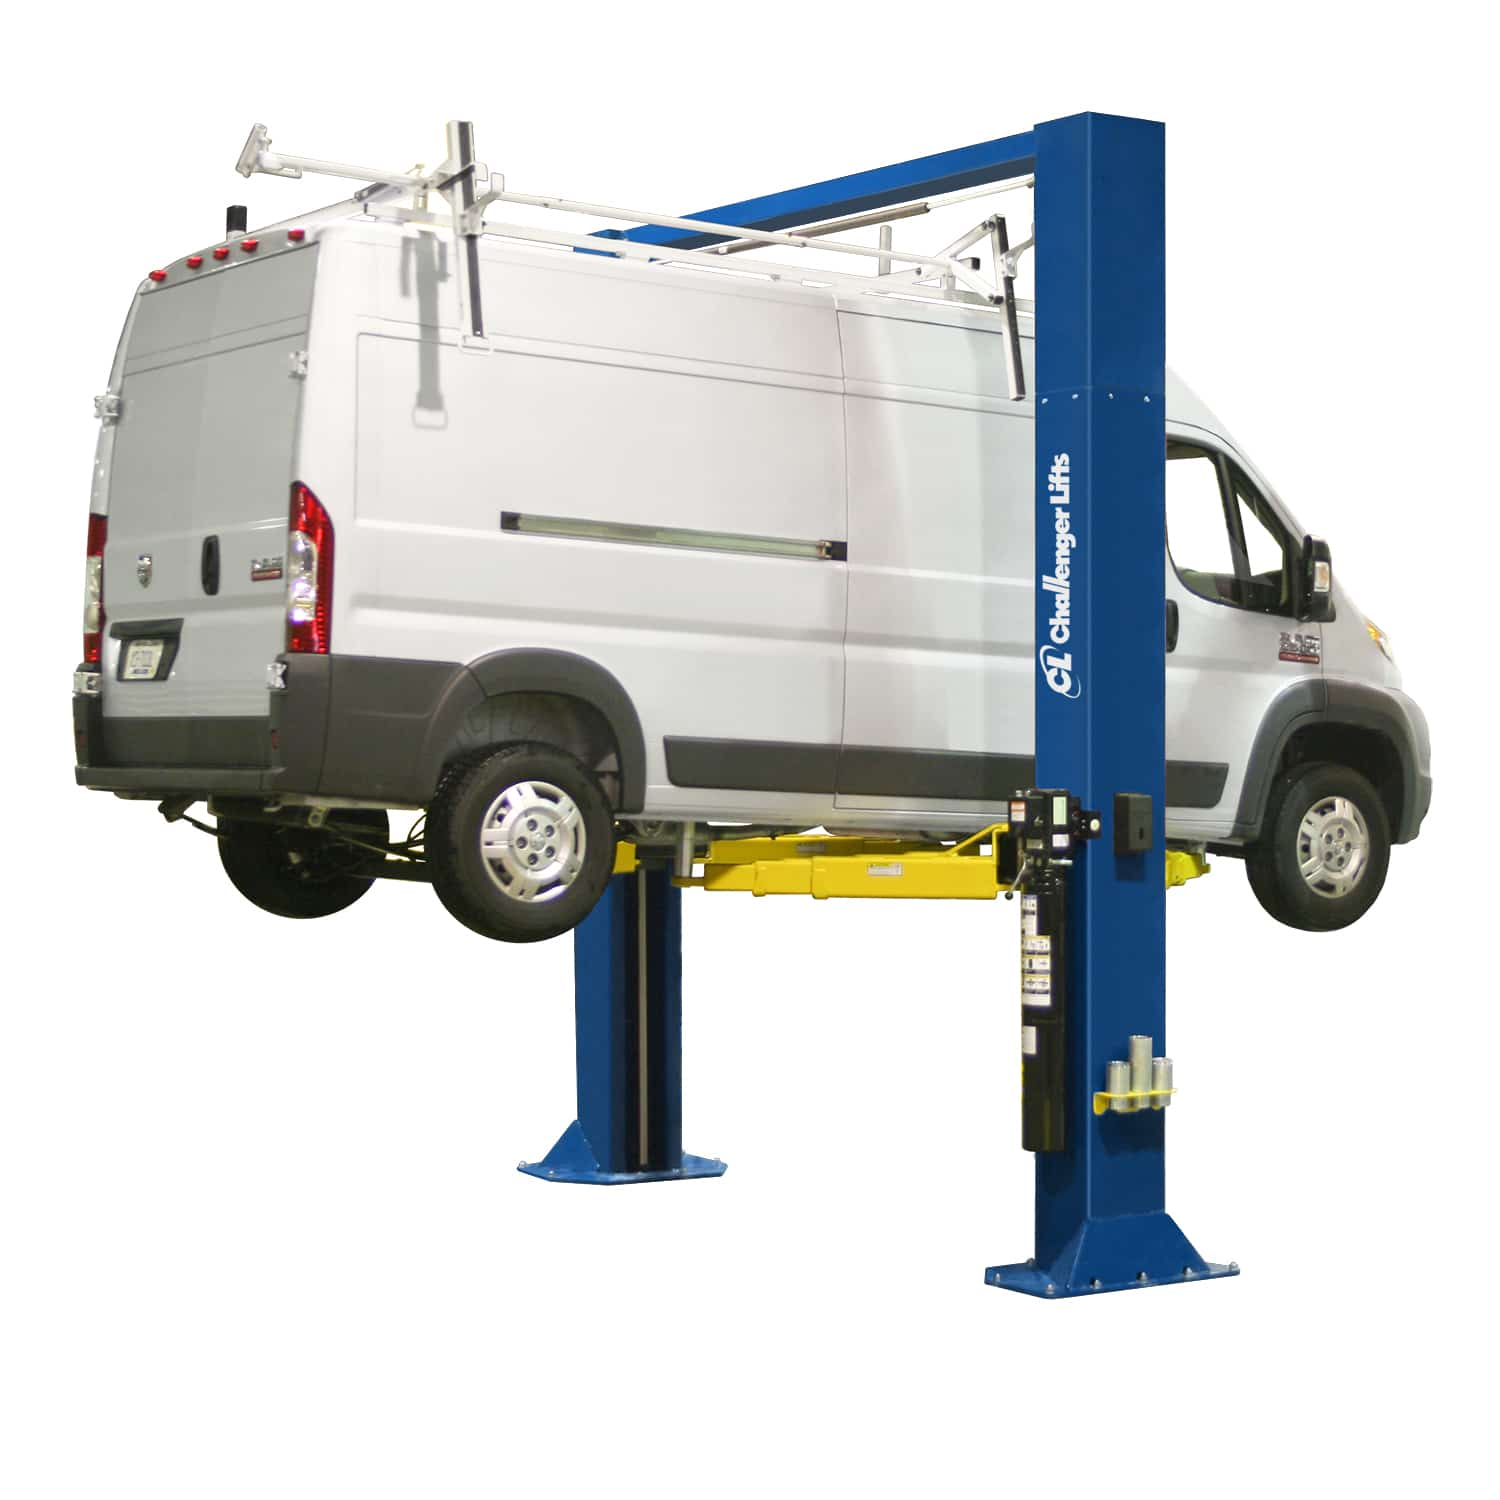 Challenger lift manual array challenger u0027s 15000 2 post lift can expand your fleet service capability rh challengerlifts fandeluxe Choice Image